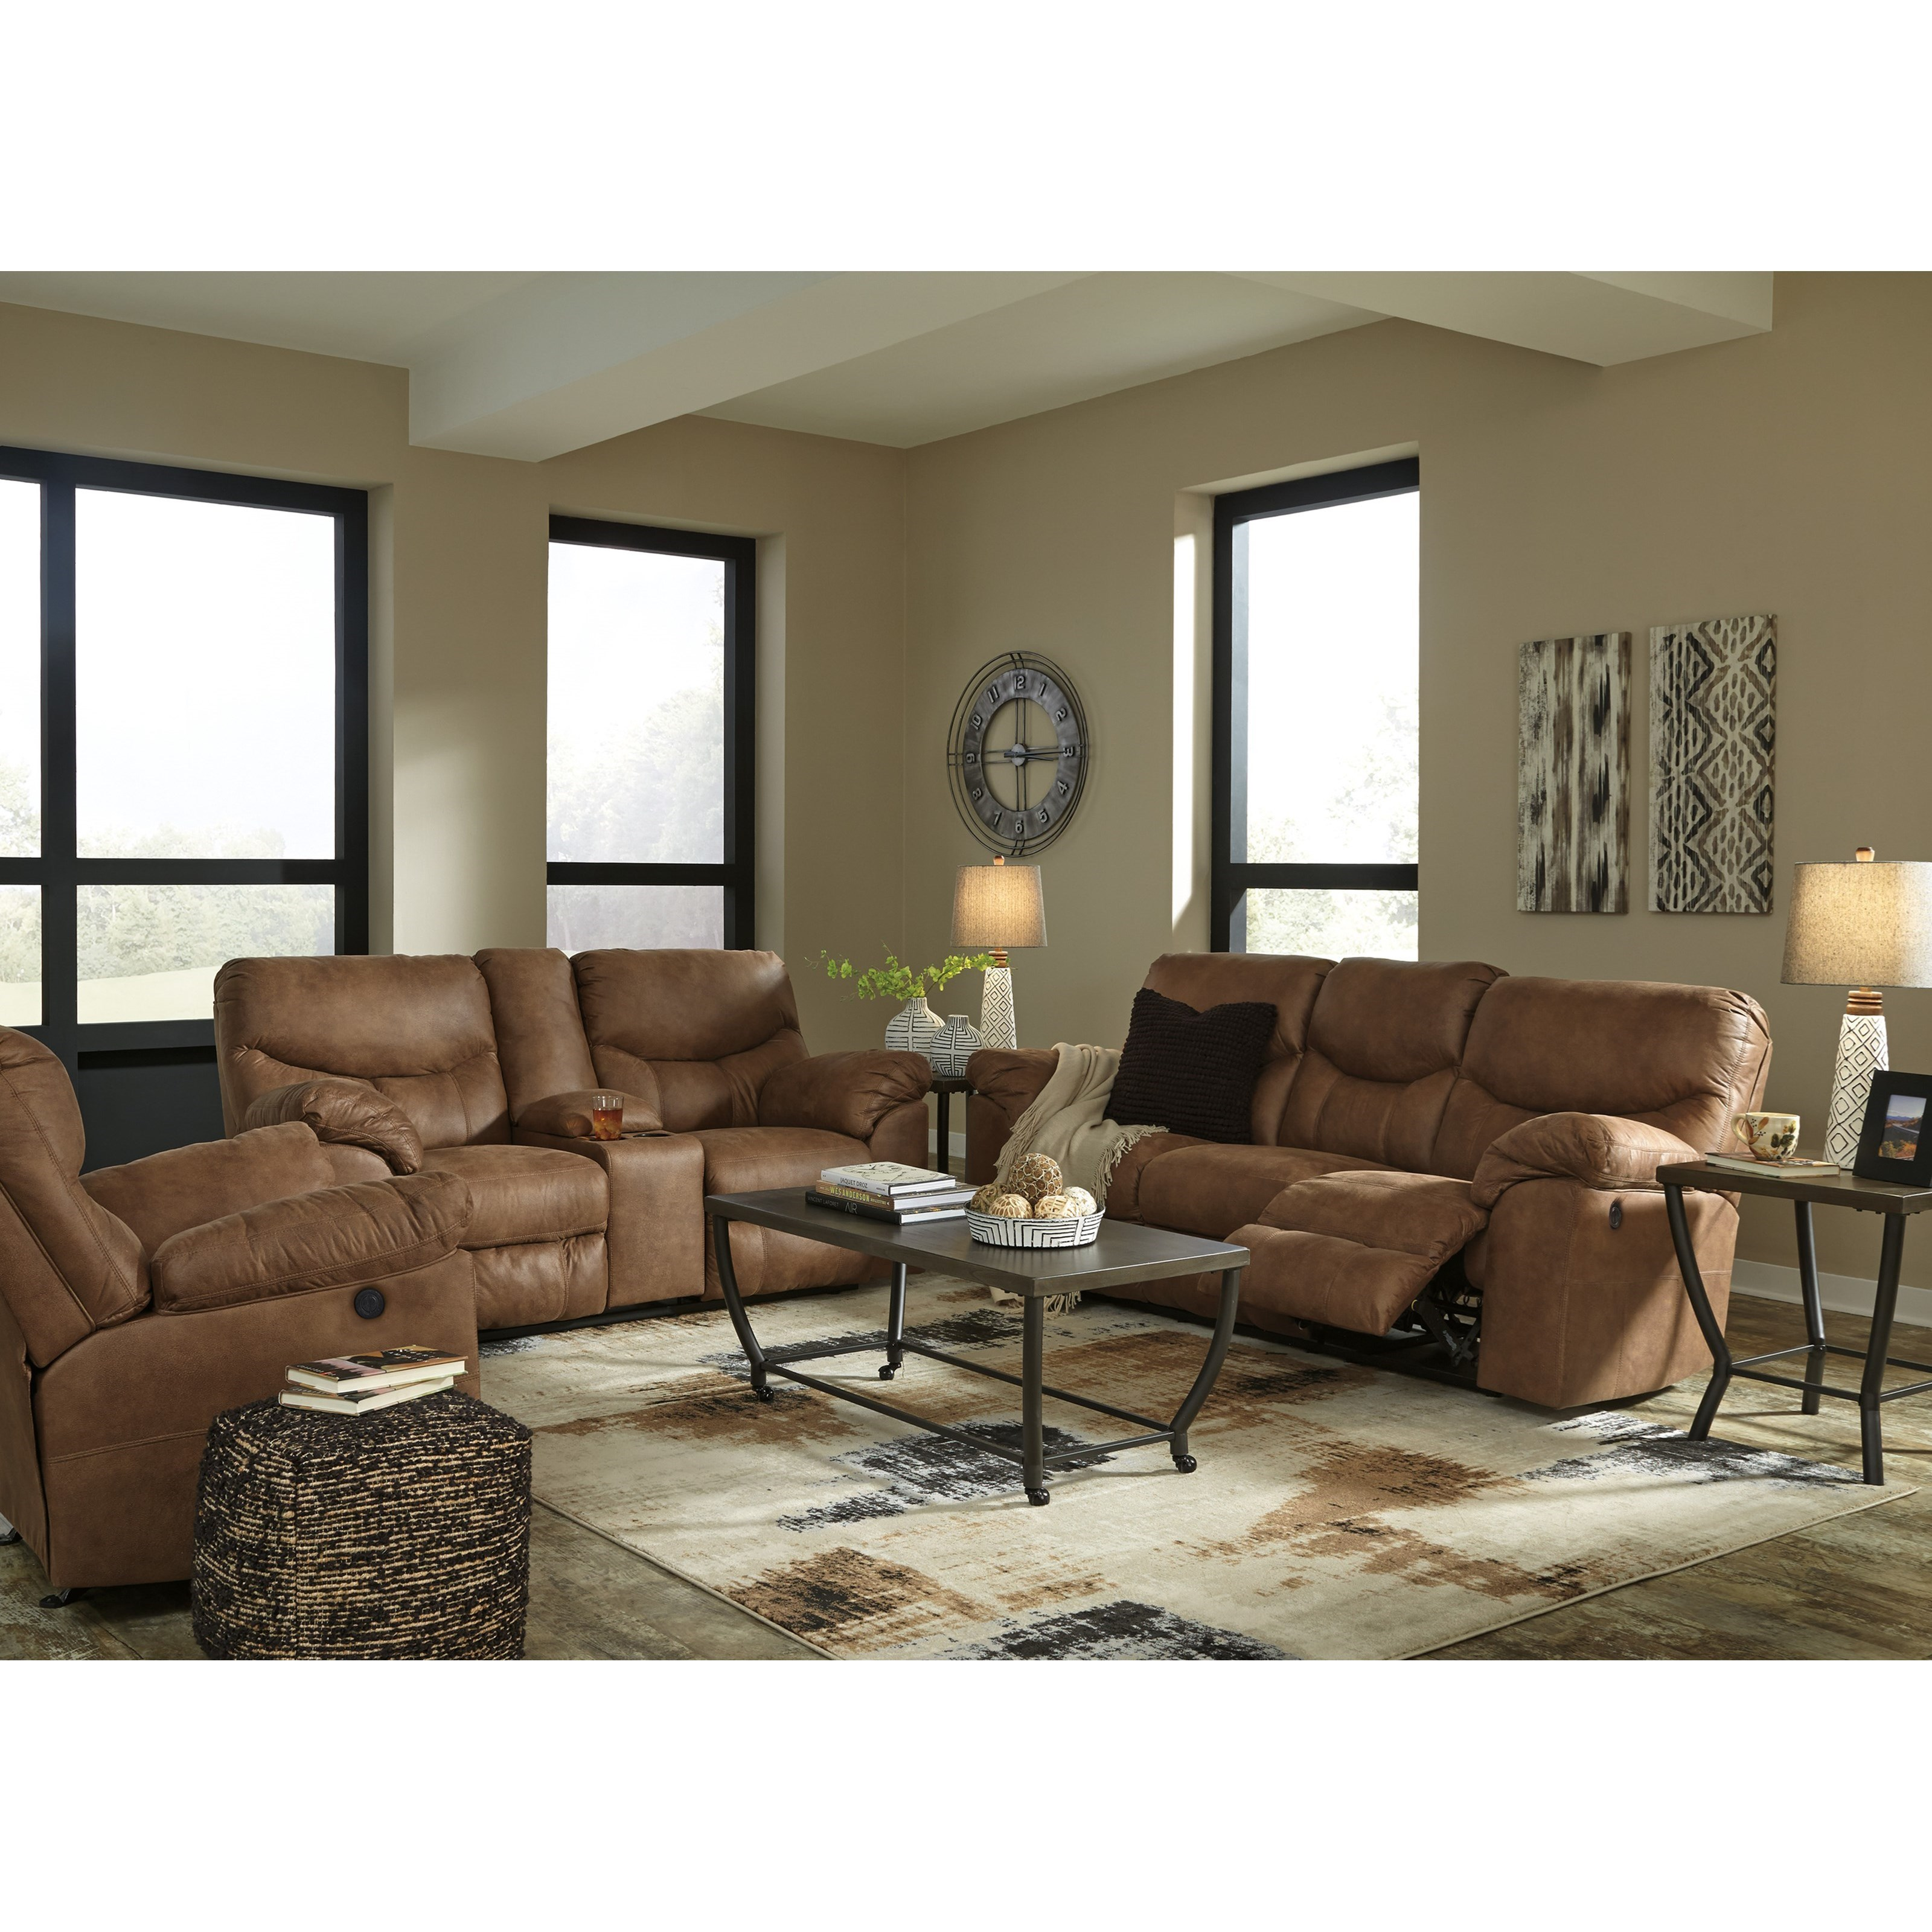 Boxberg Reclining Living Room Group by Signature Design by Ashley at Northeast Factory Direct